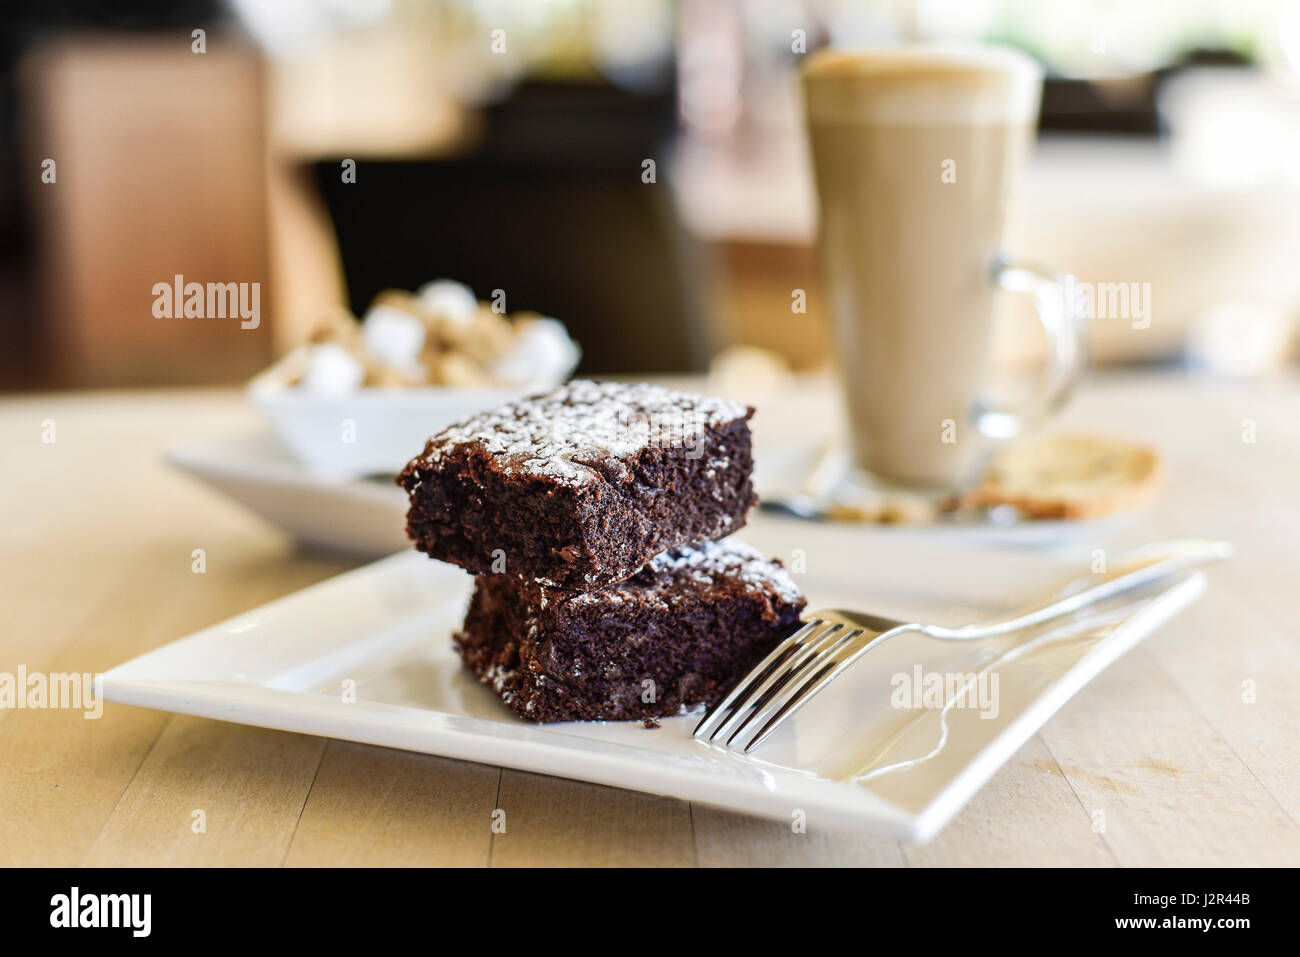 La comida dos Brownies de Chocolate Pudding de postre delicia dulce chocolate brownies Baked hornear la placa de Imagen De Stock